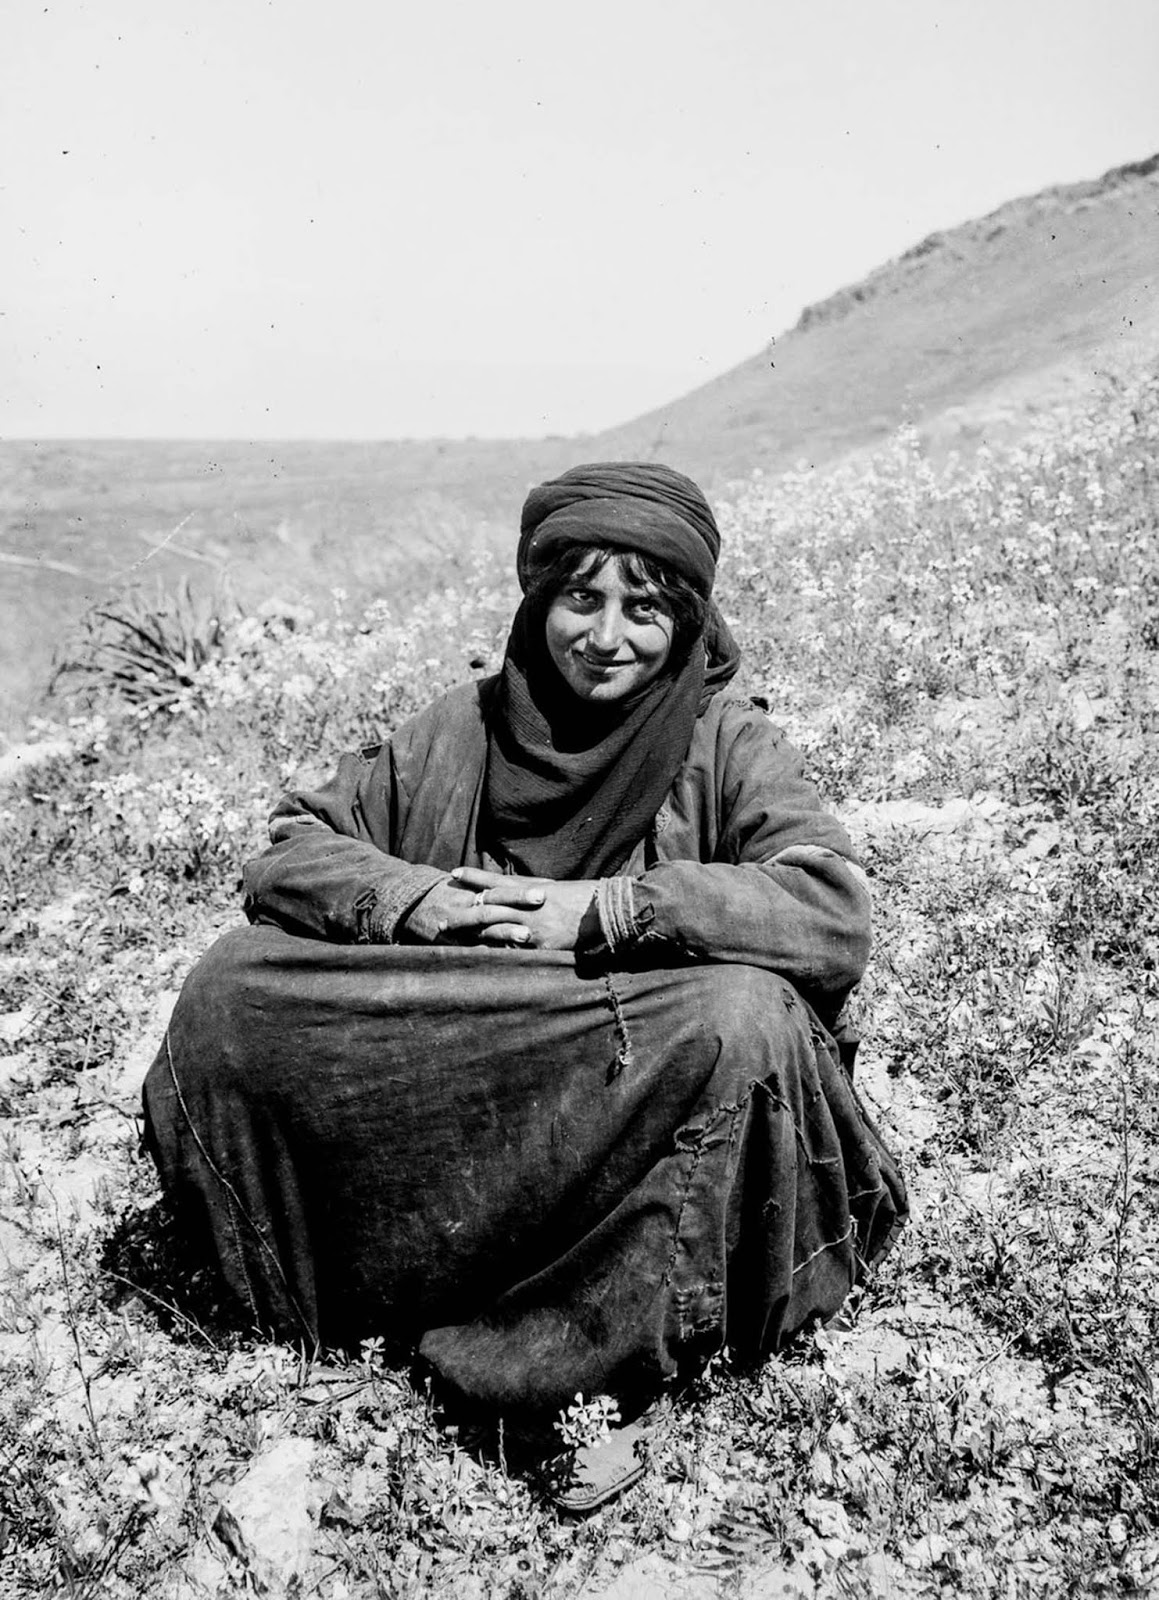 A Bedouin young woman.